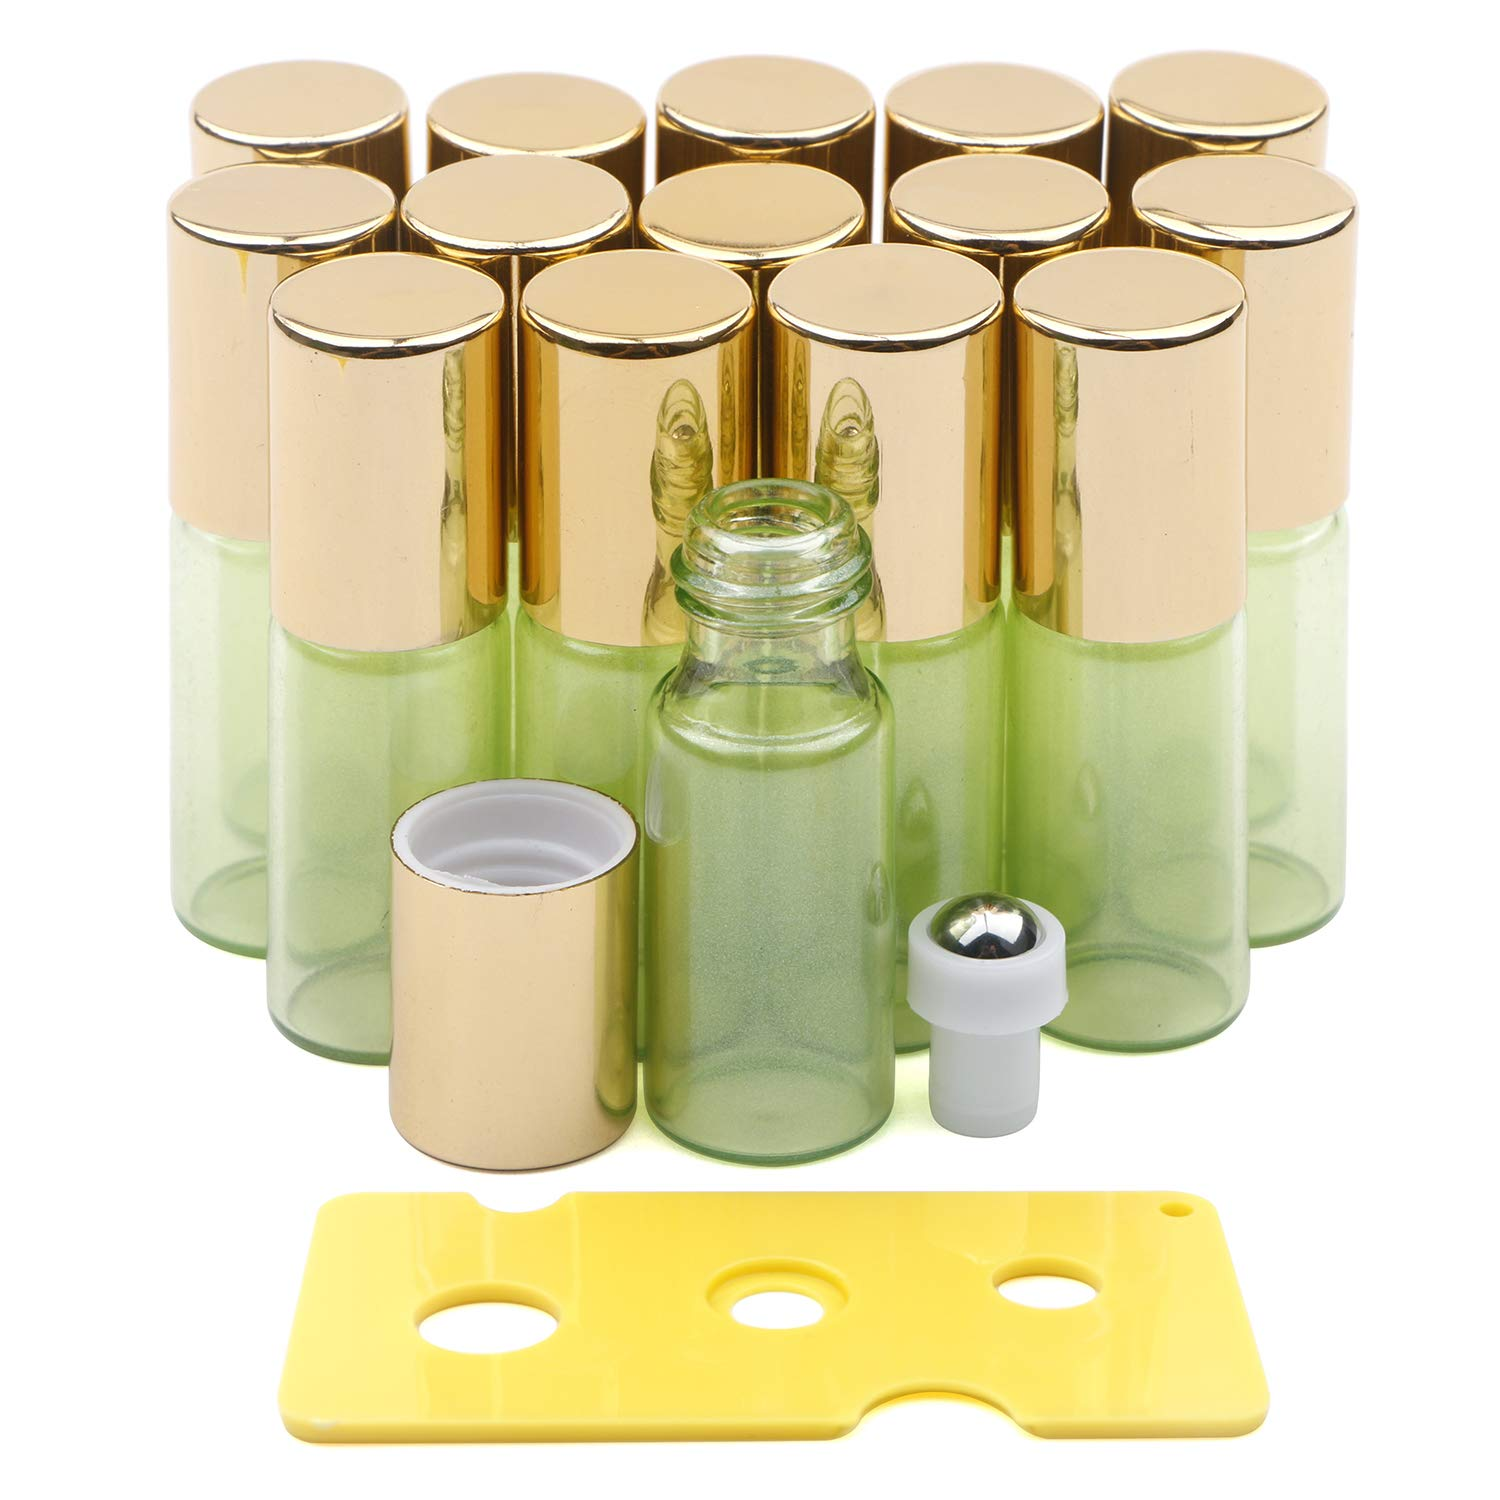 Glass Roller Bottles, Kesell 15 Pack Light Green 5ml Roller Bottles for Essential Oils with Stainless Steel Roller Balls and Opener by Kesell